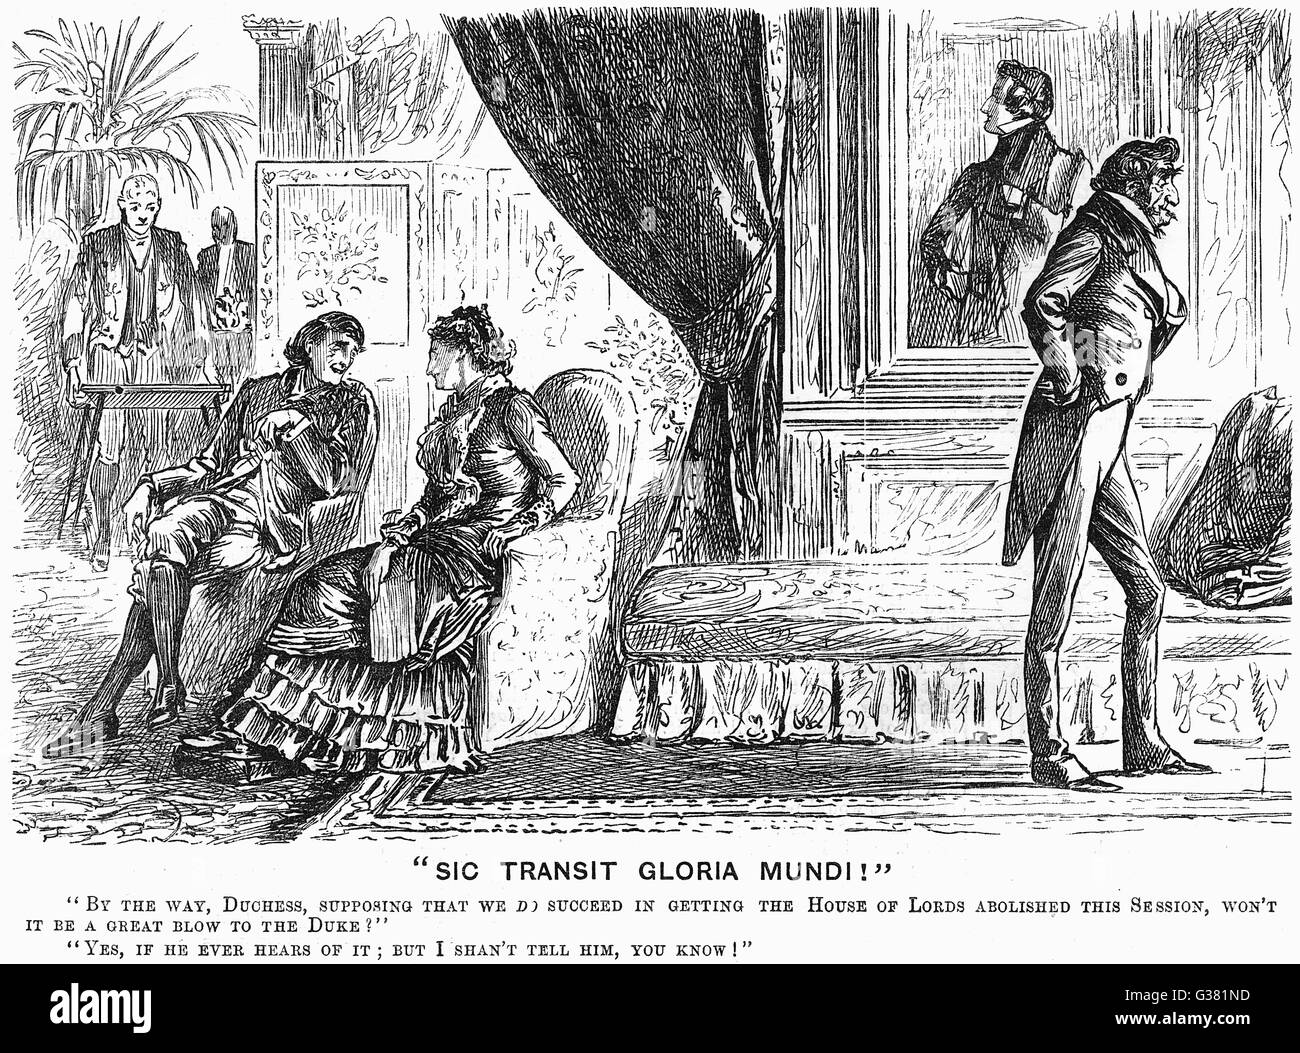 Comment on the aristocracy - discussing the abolition of  the House of Lords       Date: 1884 - Stock Image